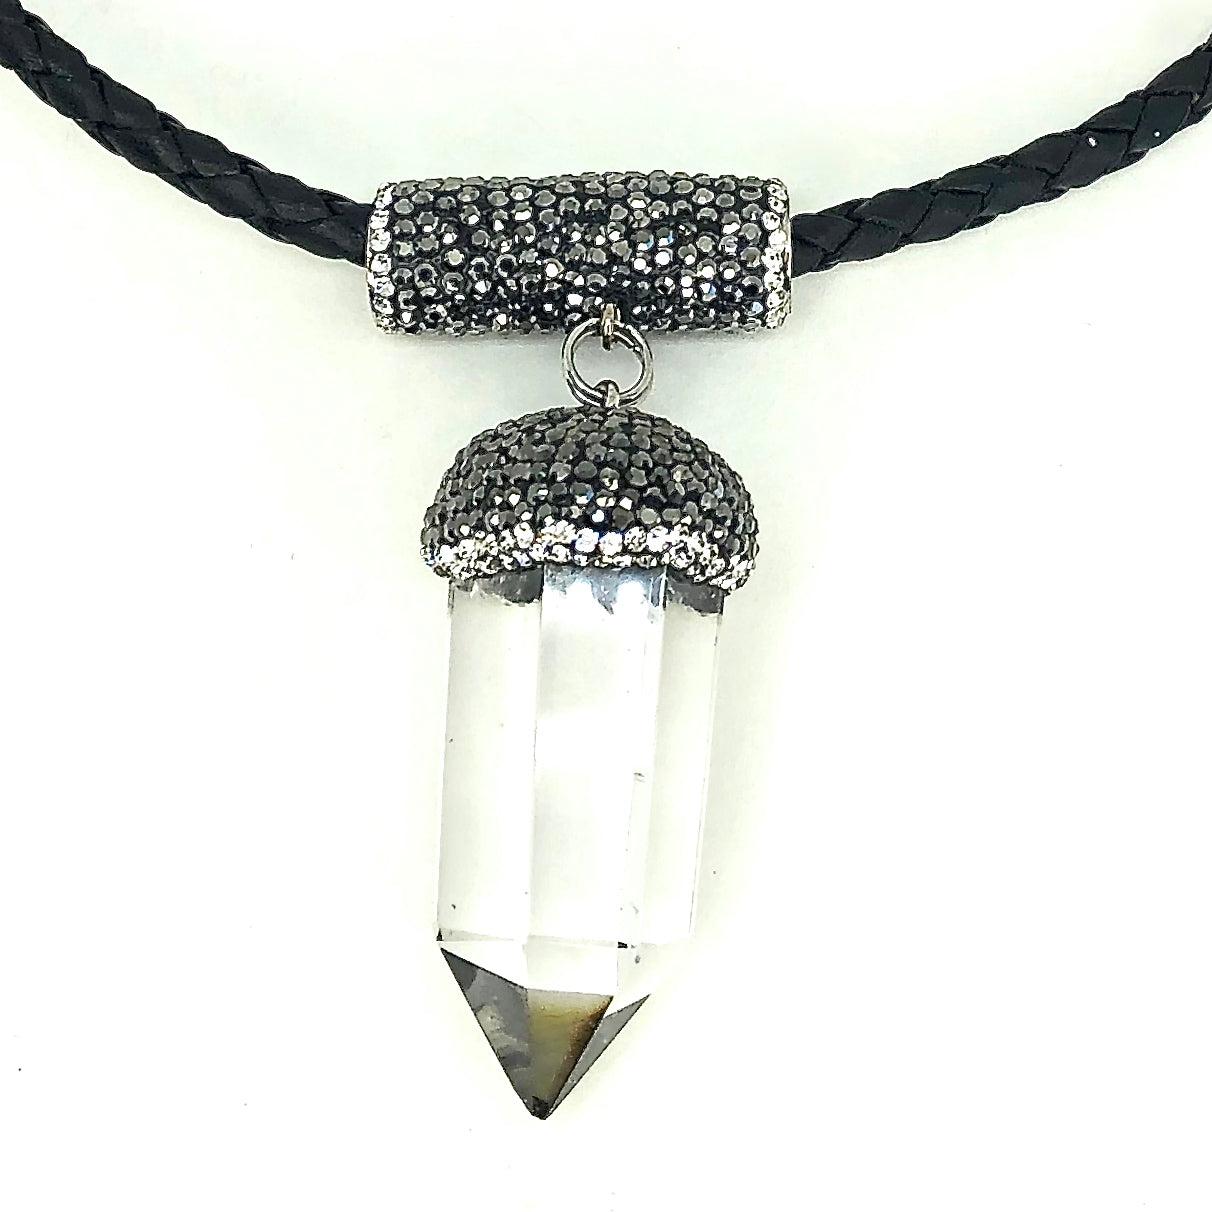 5 MM ROUND LEATHER NECKLACE WITH CLEAR QUARTZ STONE PENDANT AND RHINESTONES. by nyet jewelry.